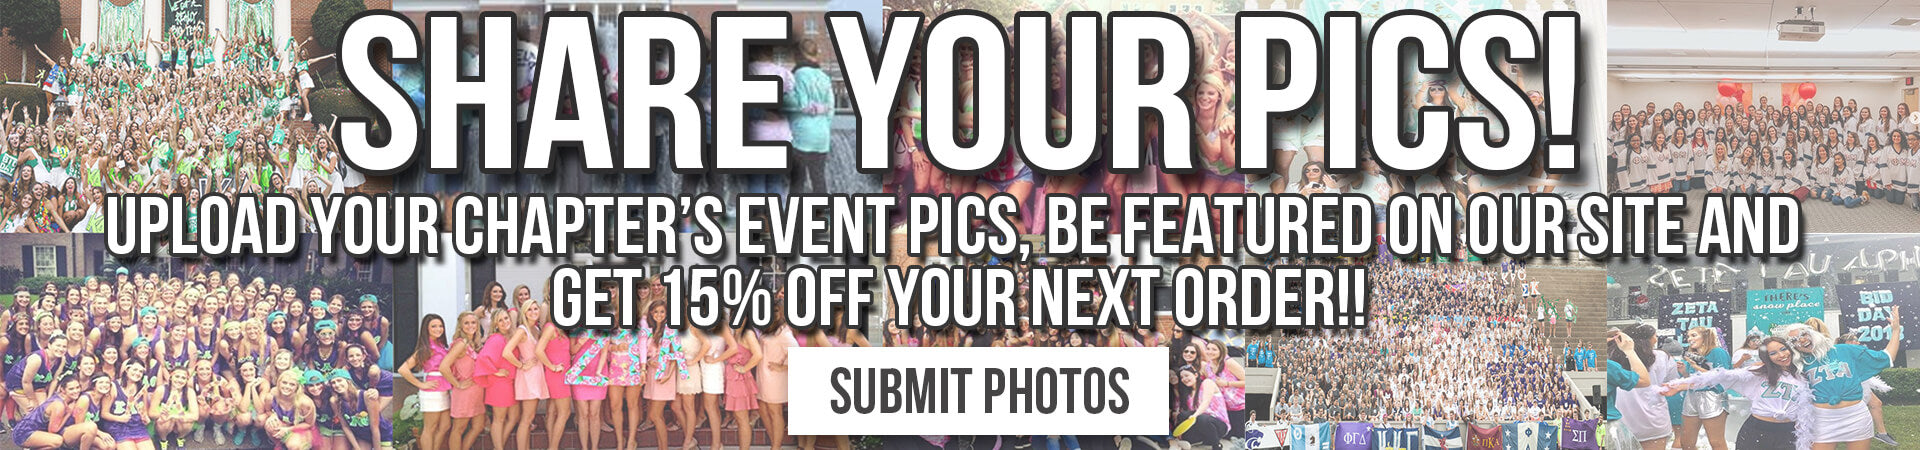 Upload Your Chapter's Event Pics, Be Featured On Our Site and Get 15% Off Your Next Order!!